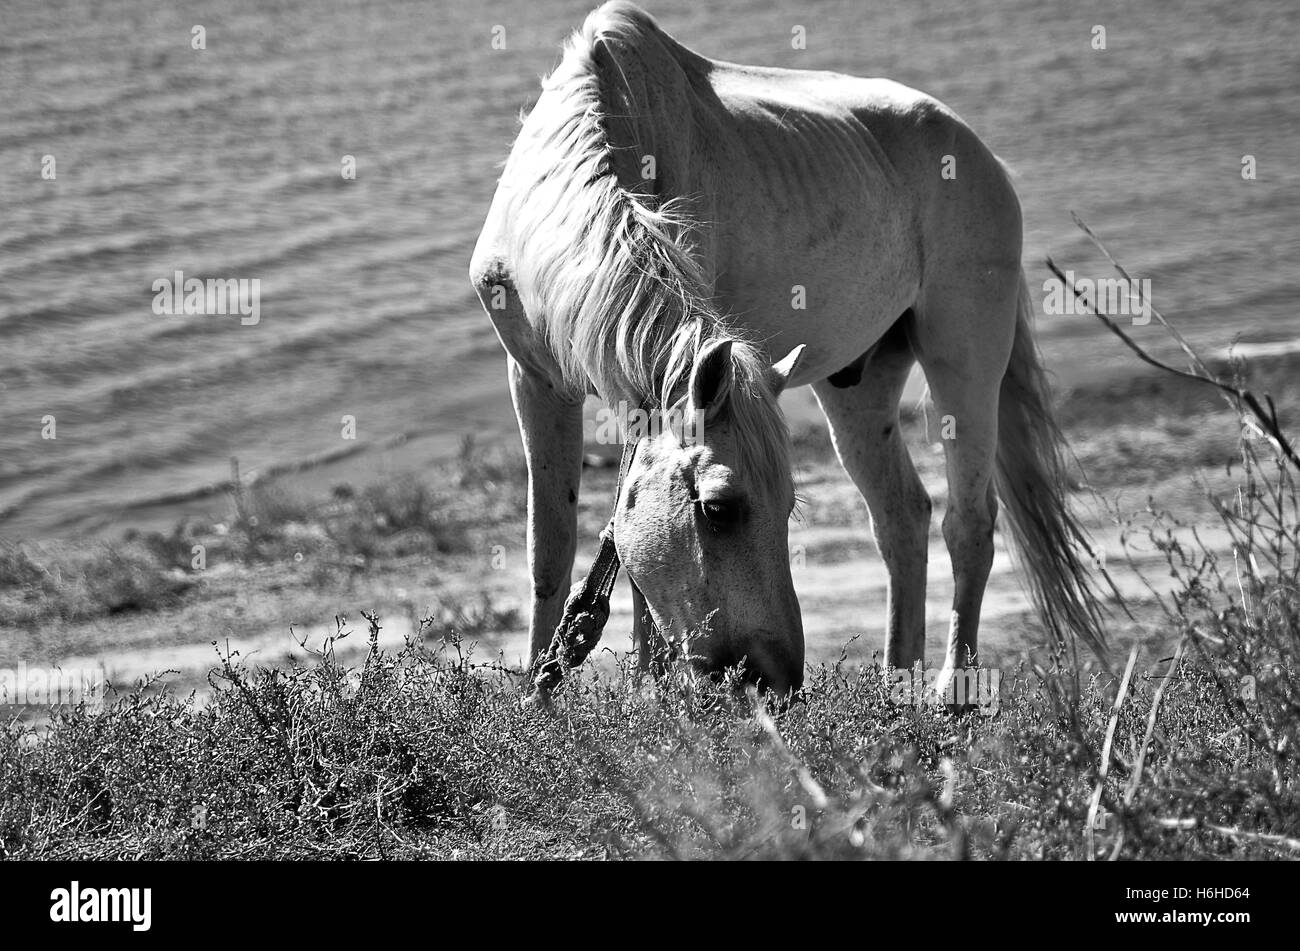 White horse on the river bank - Stock Image